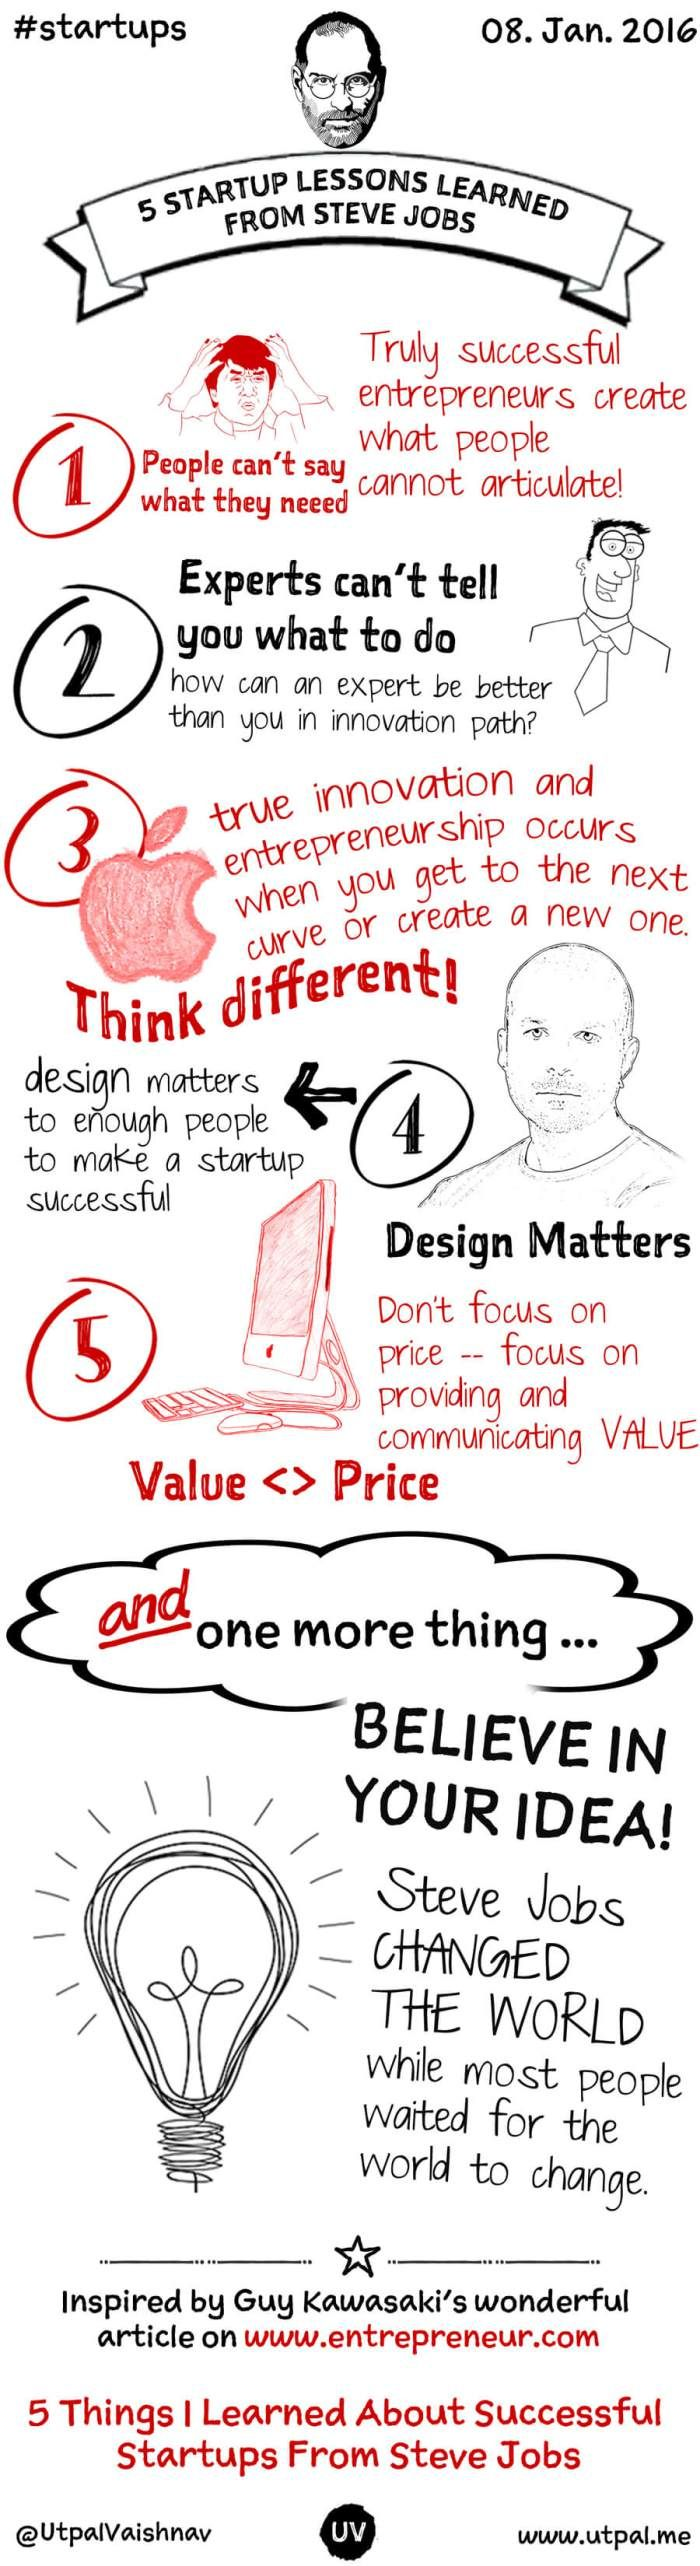 Though Steve Jobs is physically not present in this world, he's still alive in our hearts through his larger than life creations. This SketchNote is my attempt to articulate his #startup lessons.